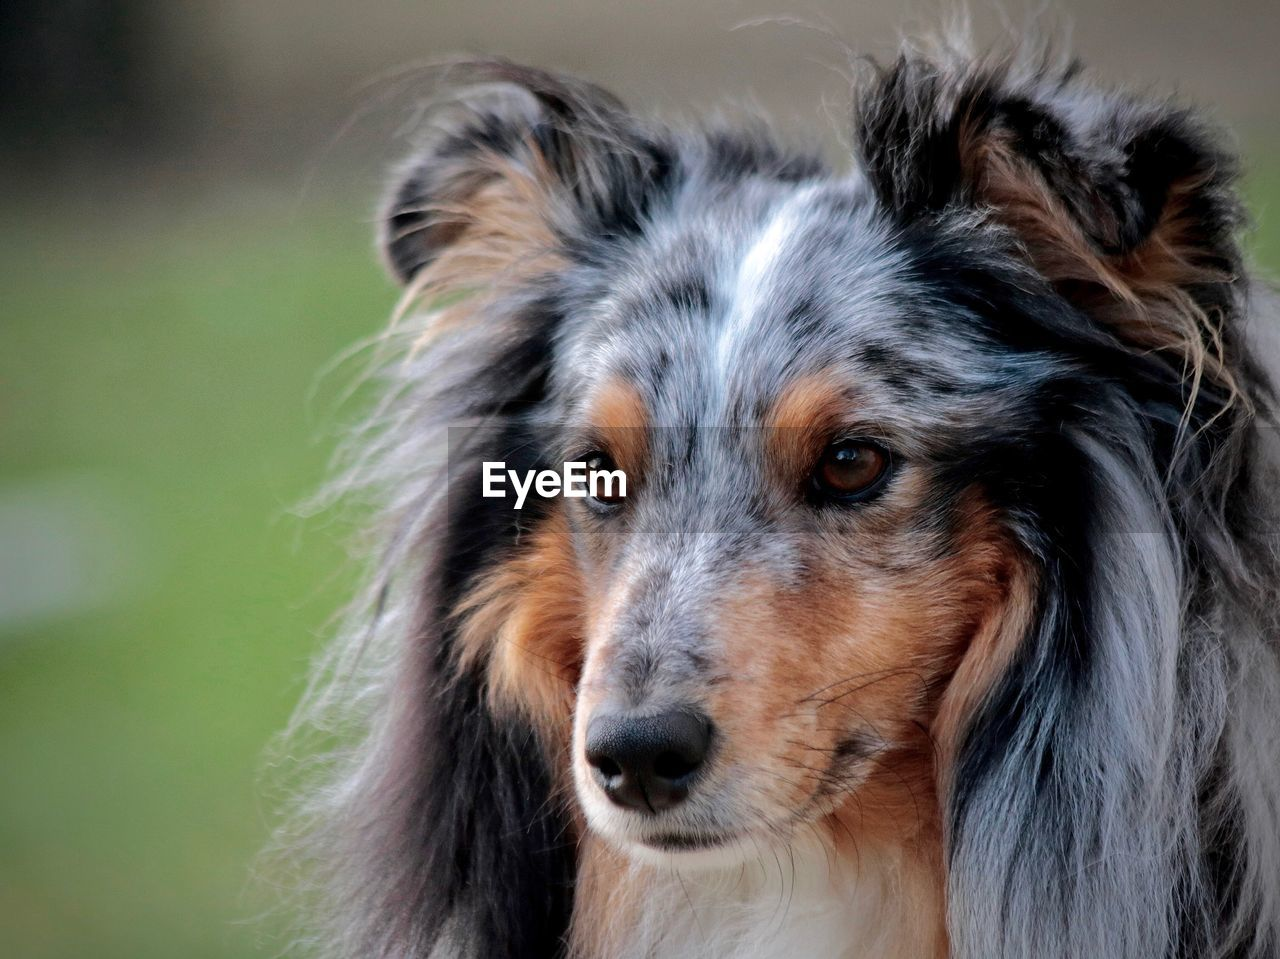 dog, canine, mammal, domestic, one animal, pets, animal, animal themes, domestic animals, animal body part, close-up, animal head, portrait, vertebrate, focus on foreground, no people, looking, looking at camera, animal hair, animal mouth, animal eye, snout, whisker, animal nose